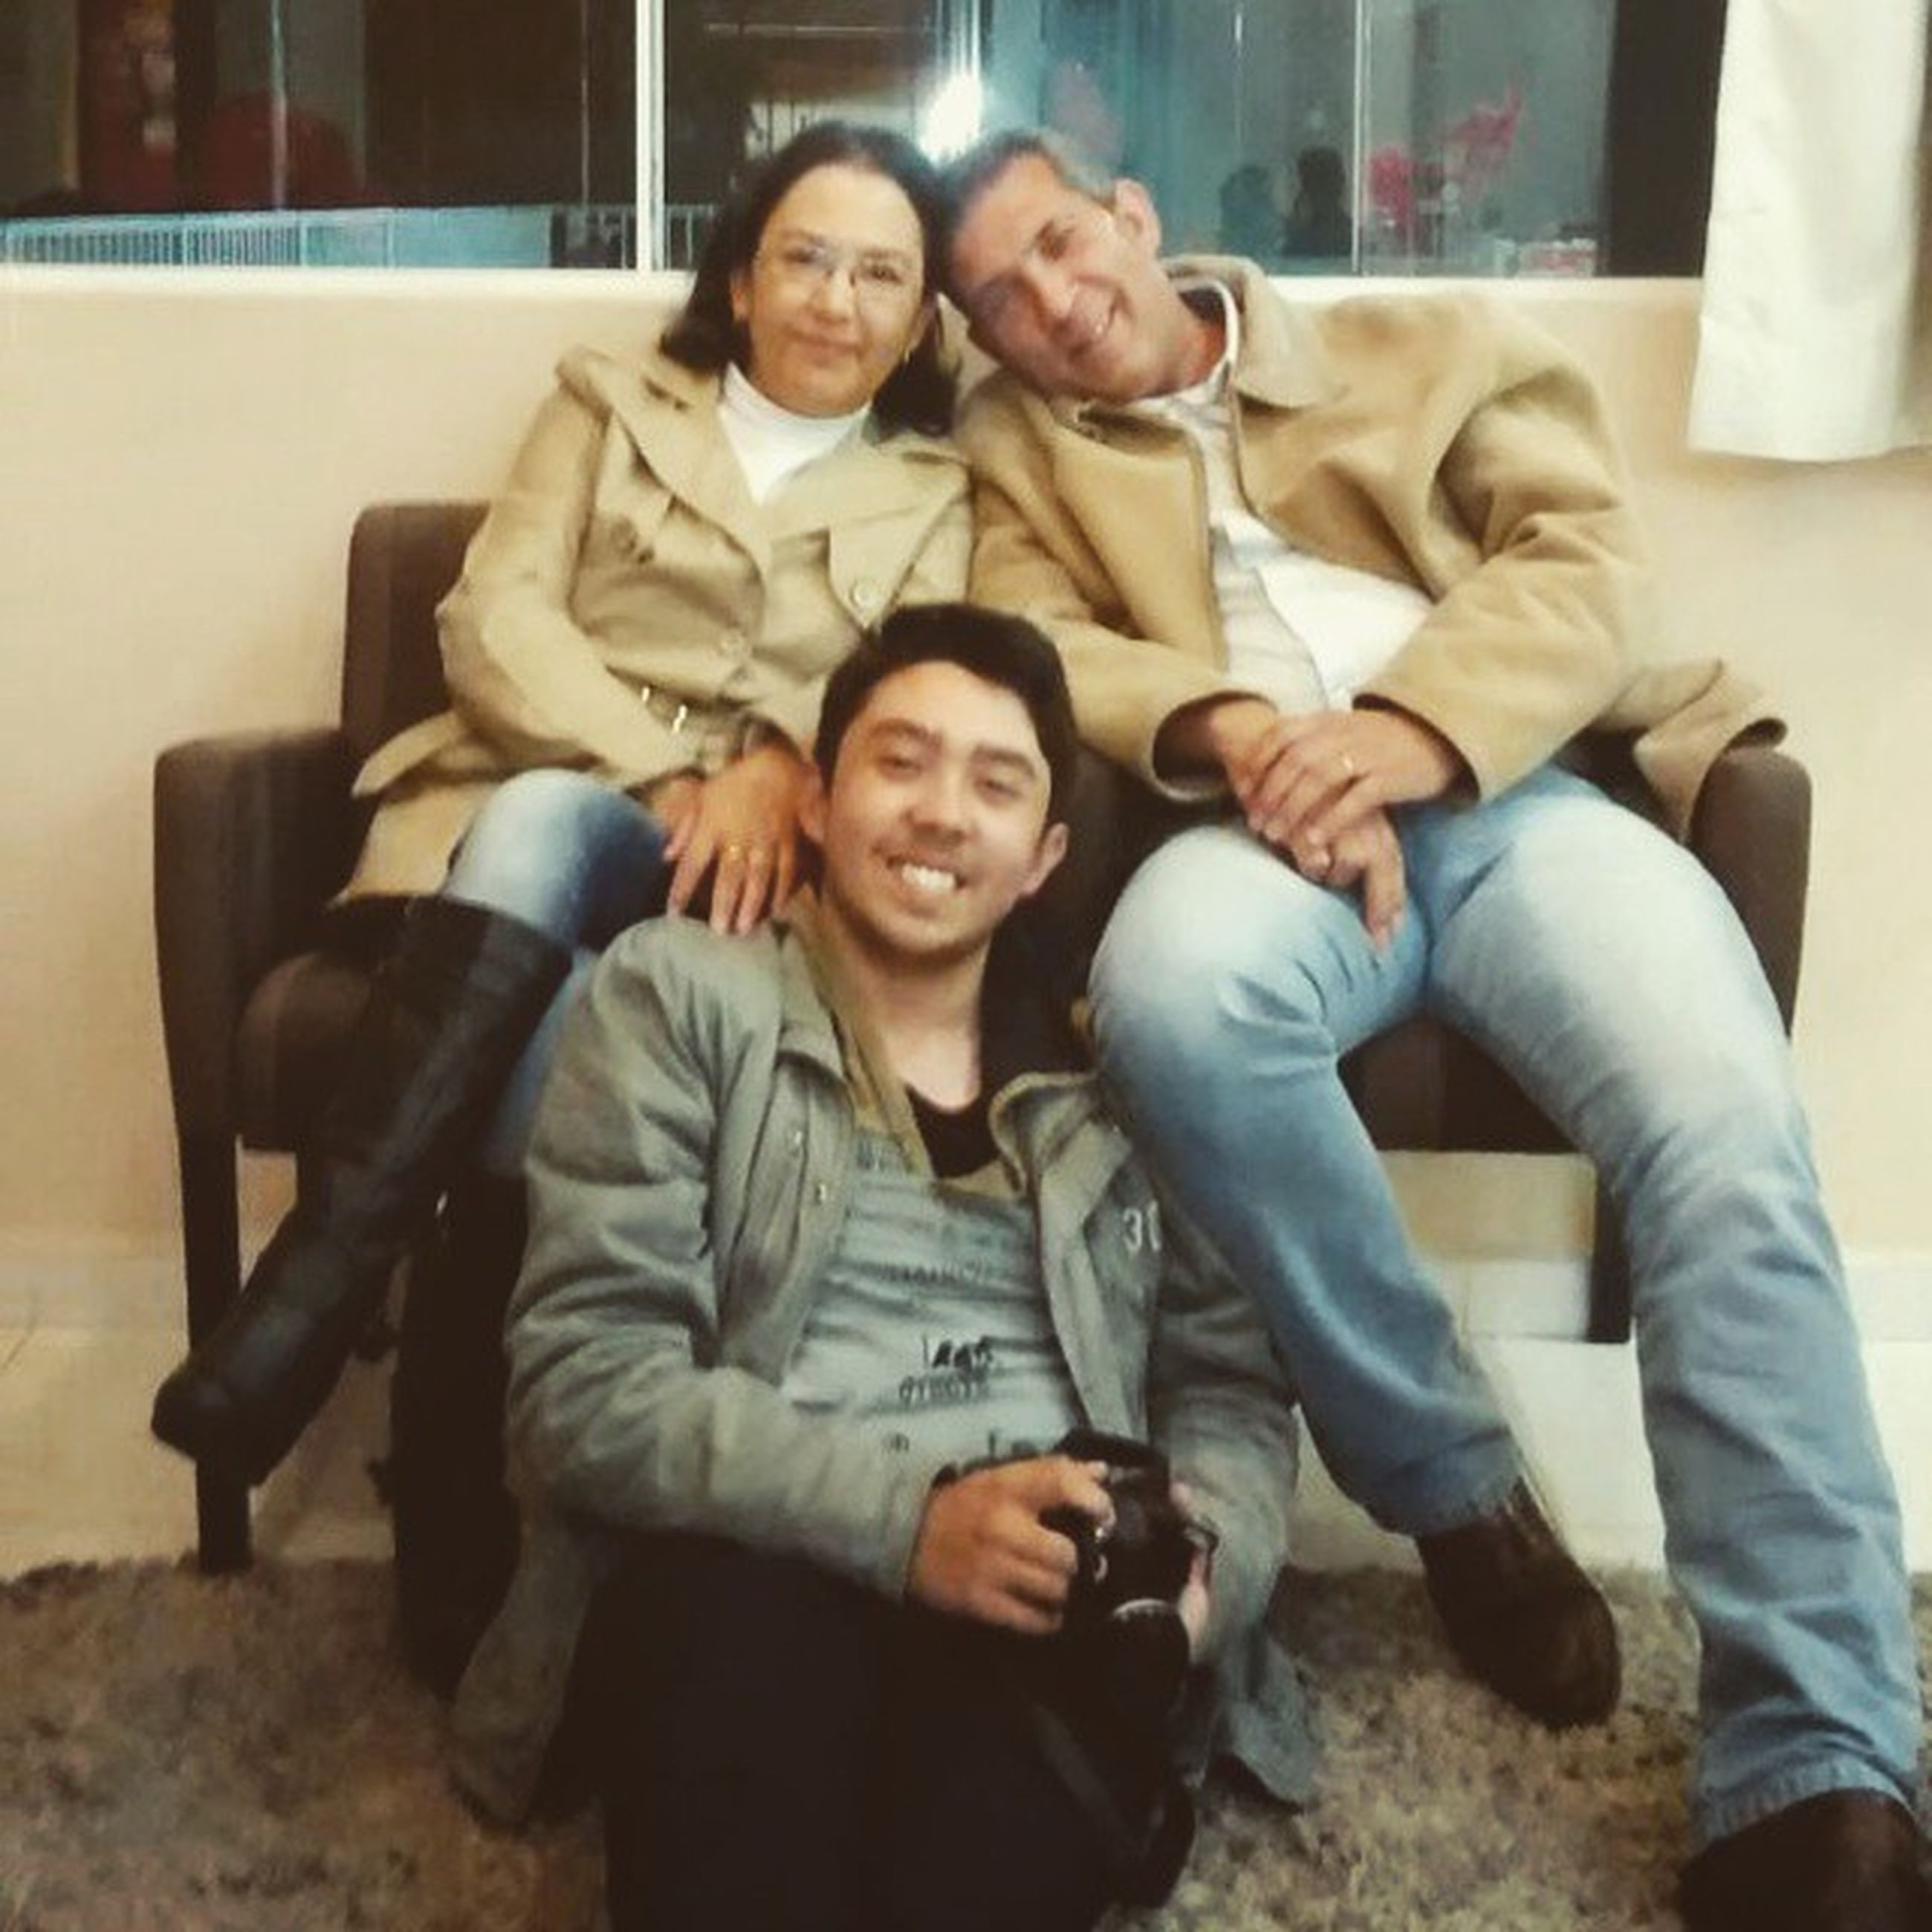 person, portrait, looking at camera, togetherness, lifestyles, smiling, happiness, leisure activity, childhood, casual clothing, bonding, full length, elementary age, sitting, front view, boys, love, young adult